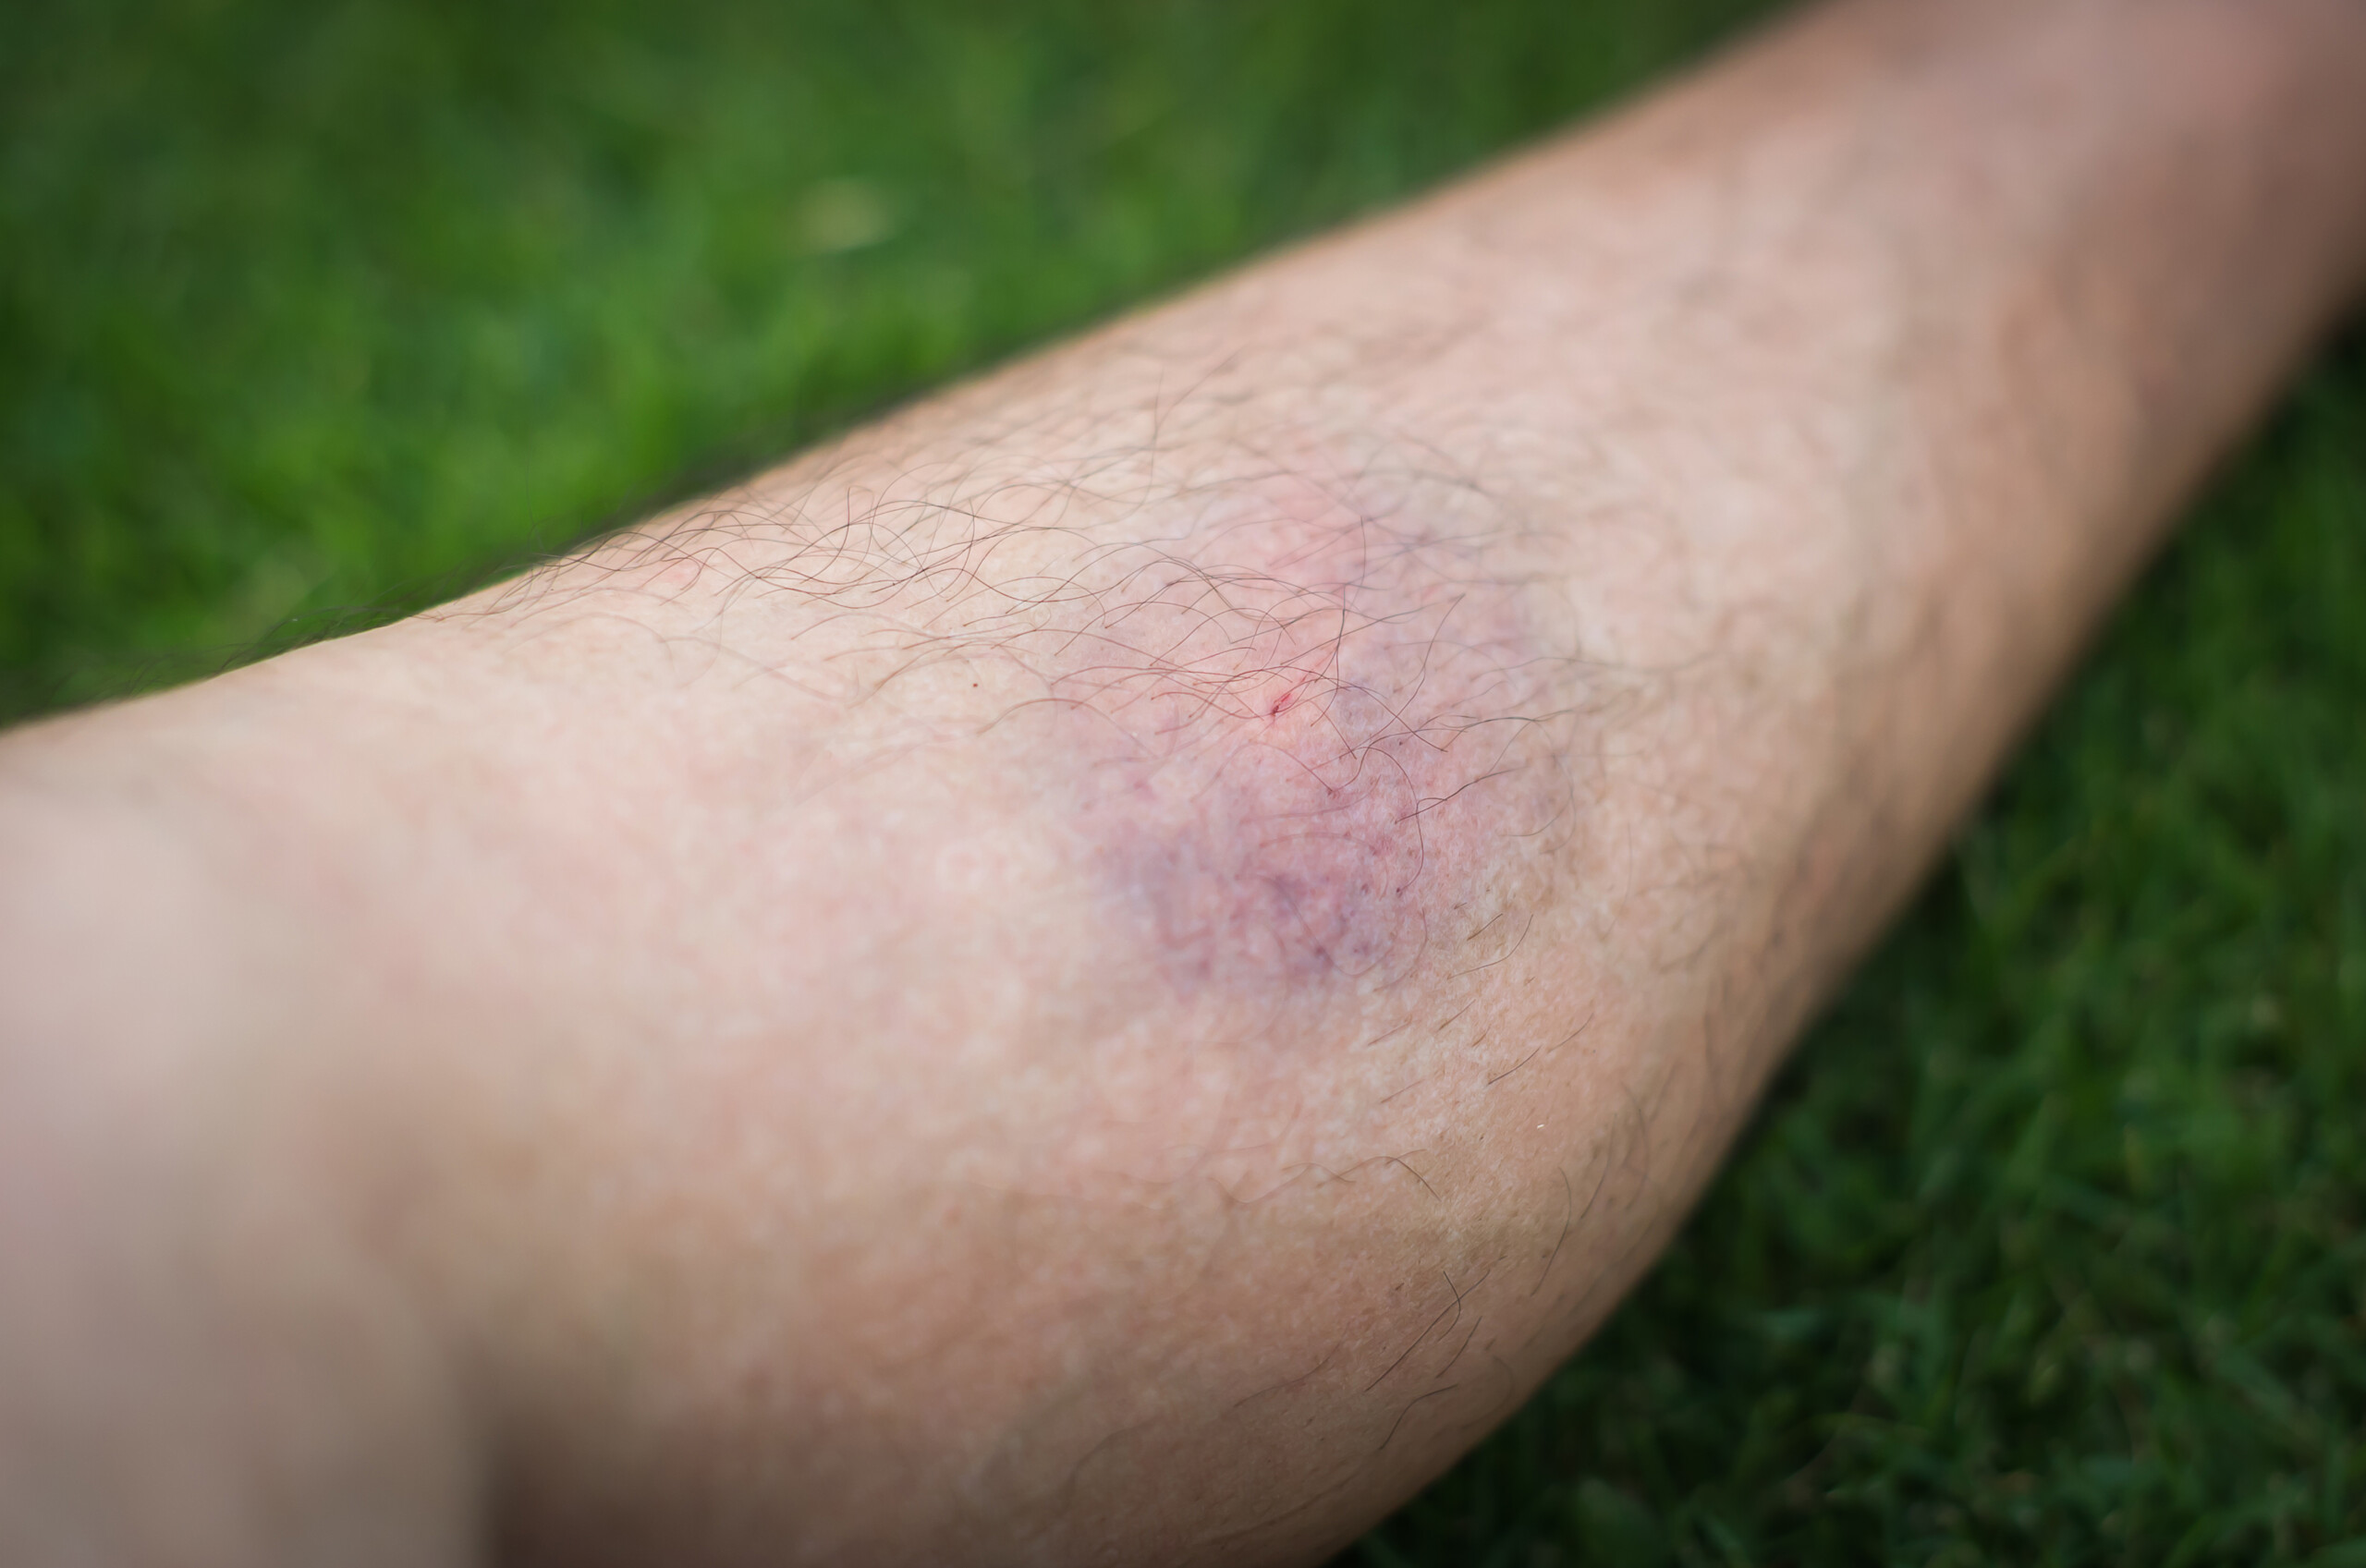 Harmless Bruise vs. Dangerous Blood Clot: the Difference?